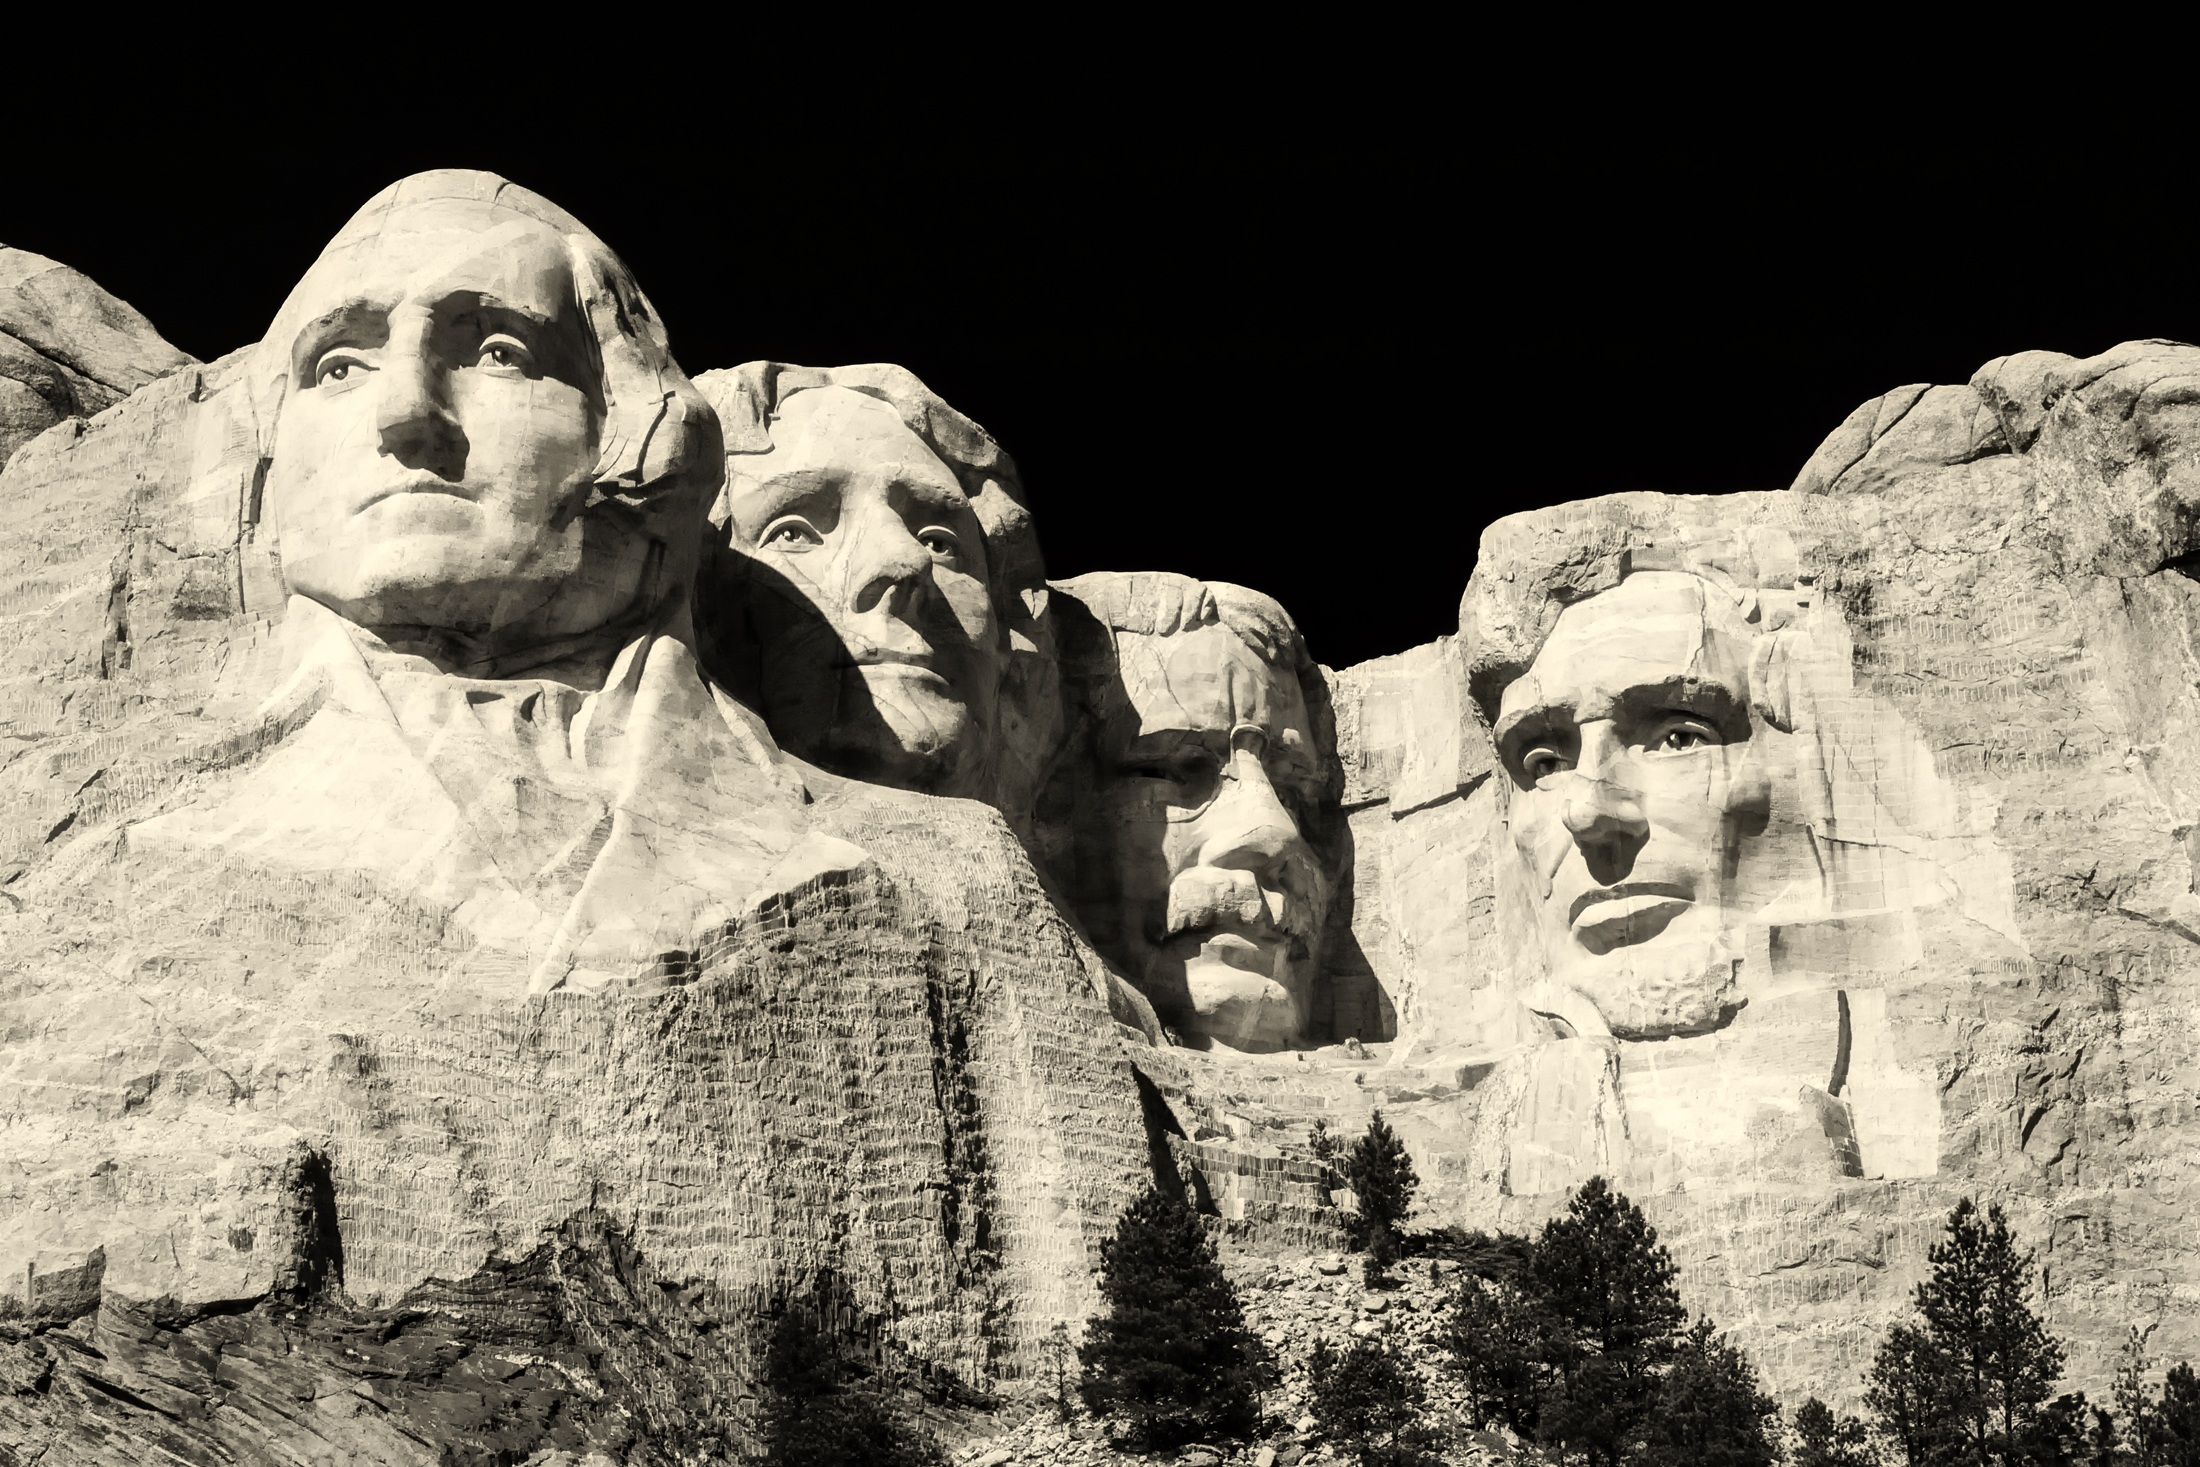 Mount rushmore national memorial in the black hills of